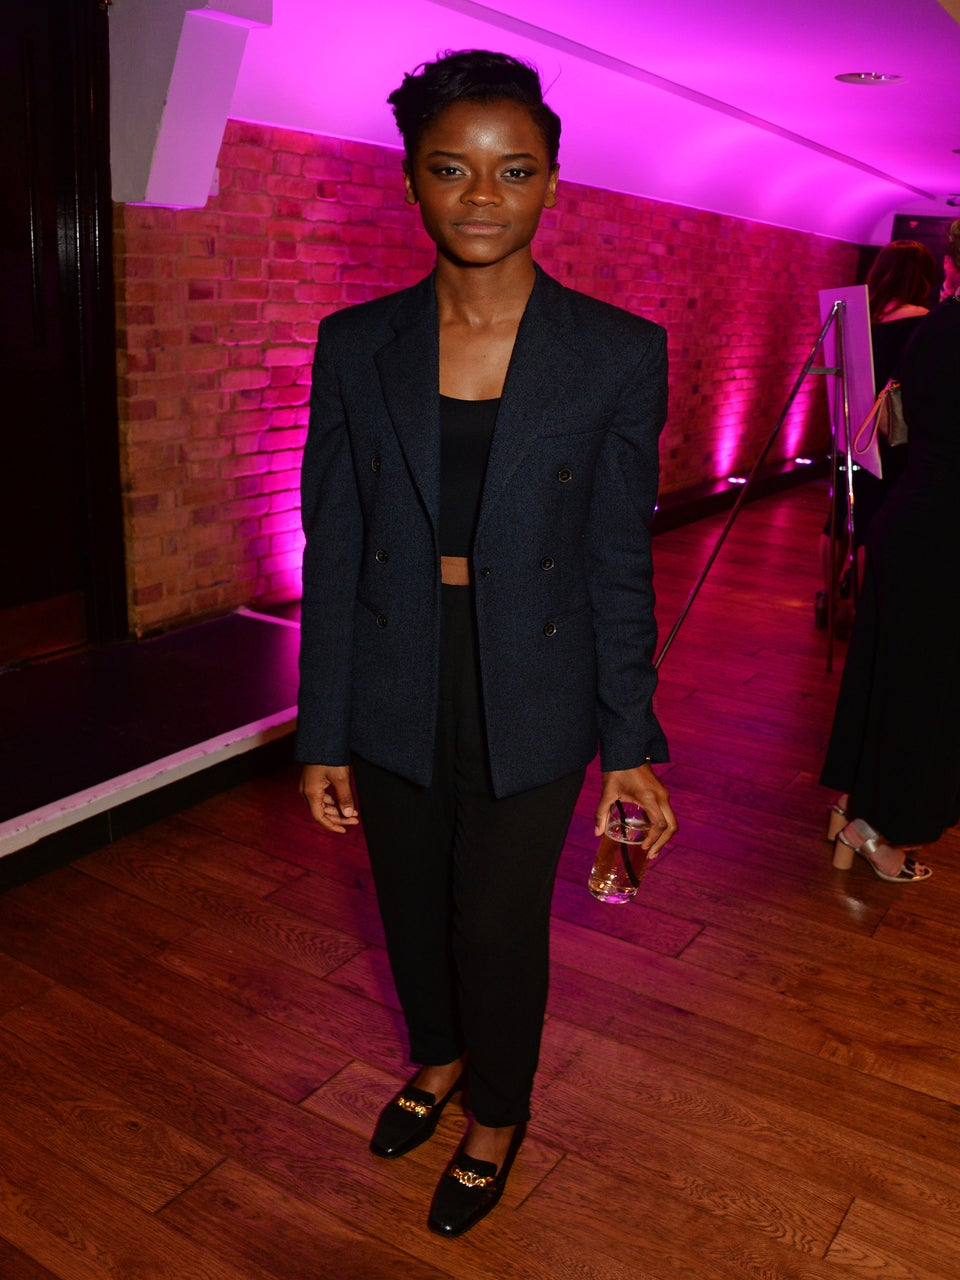 'Black Panther's' Letitia Wright Explains How 'The Spirit Of Discernment' Guides Her Friendships